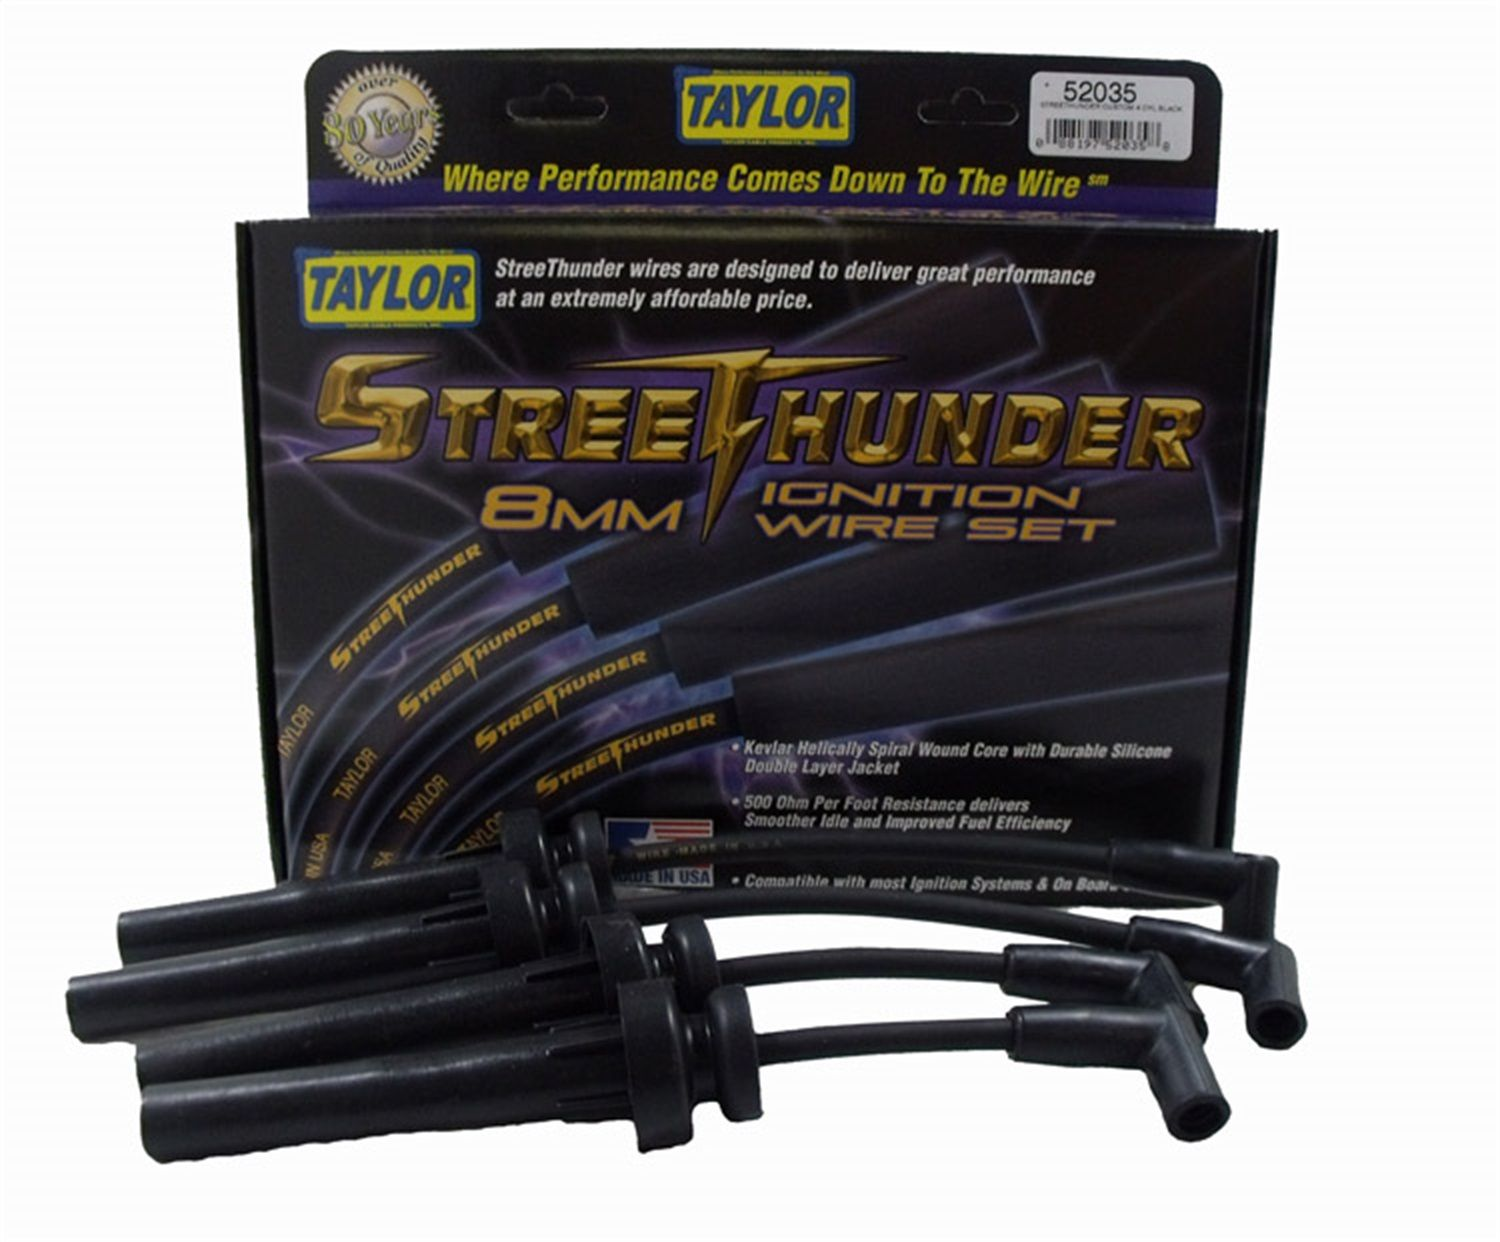 Dodge Neon Spark Plug Wire Set Replacement (Accel, Crown ... on neon spark plug tubes, neon indicator lights, neon spark plug signs, neon shifter bushings, neon spark plug lights, light-up motorcycle plug wires, neon headlights, neon spark coil,